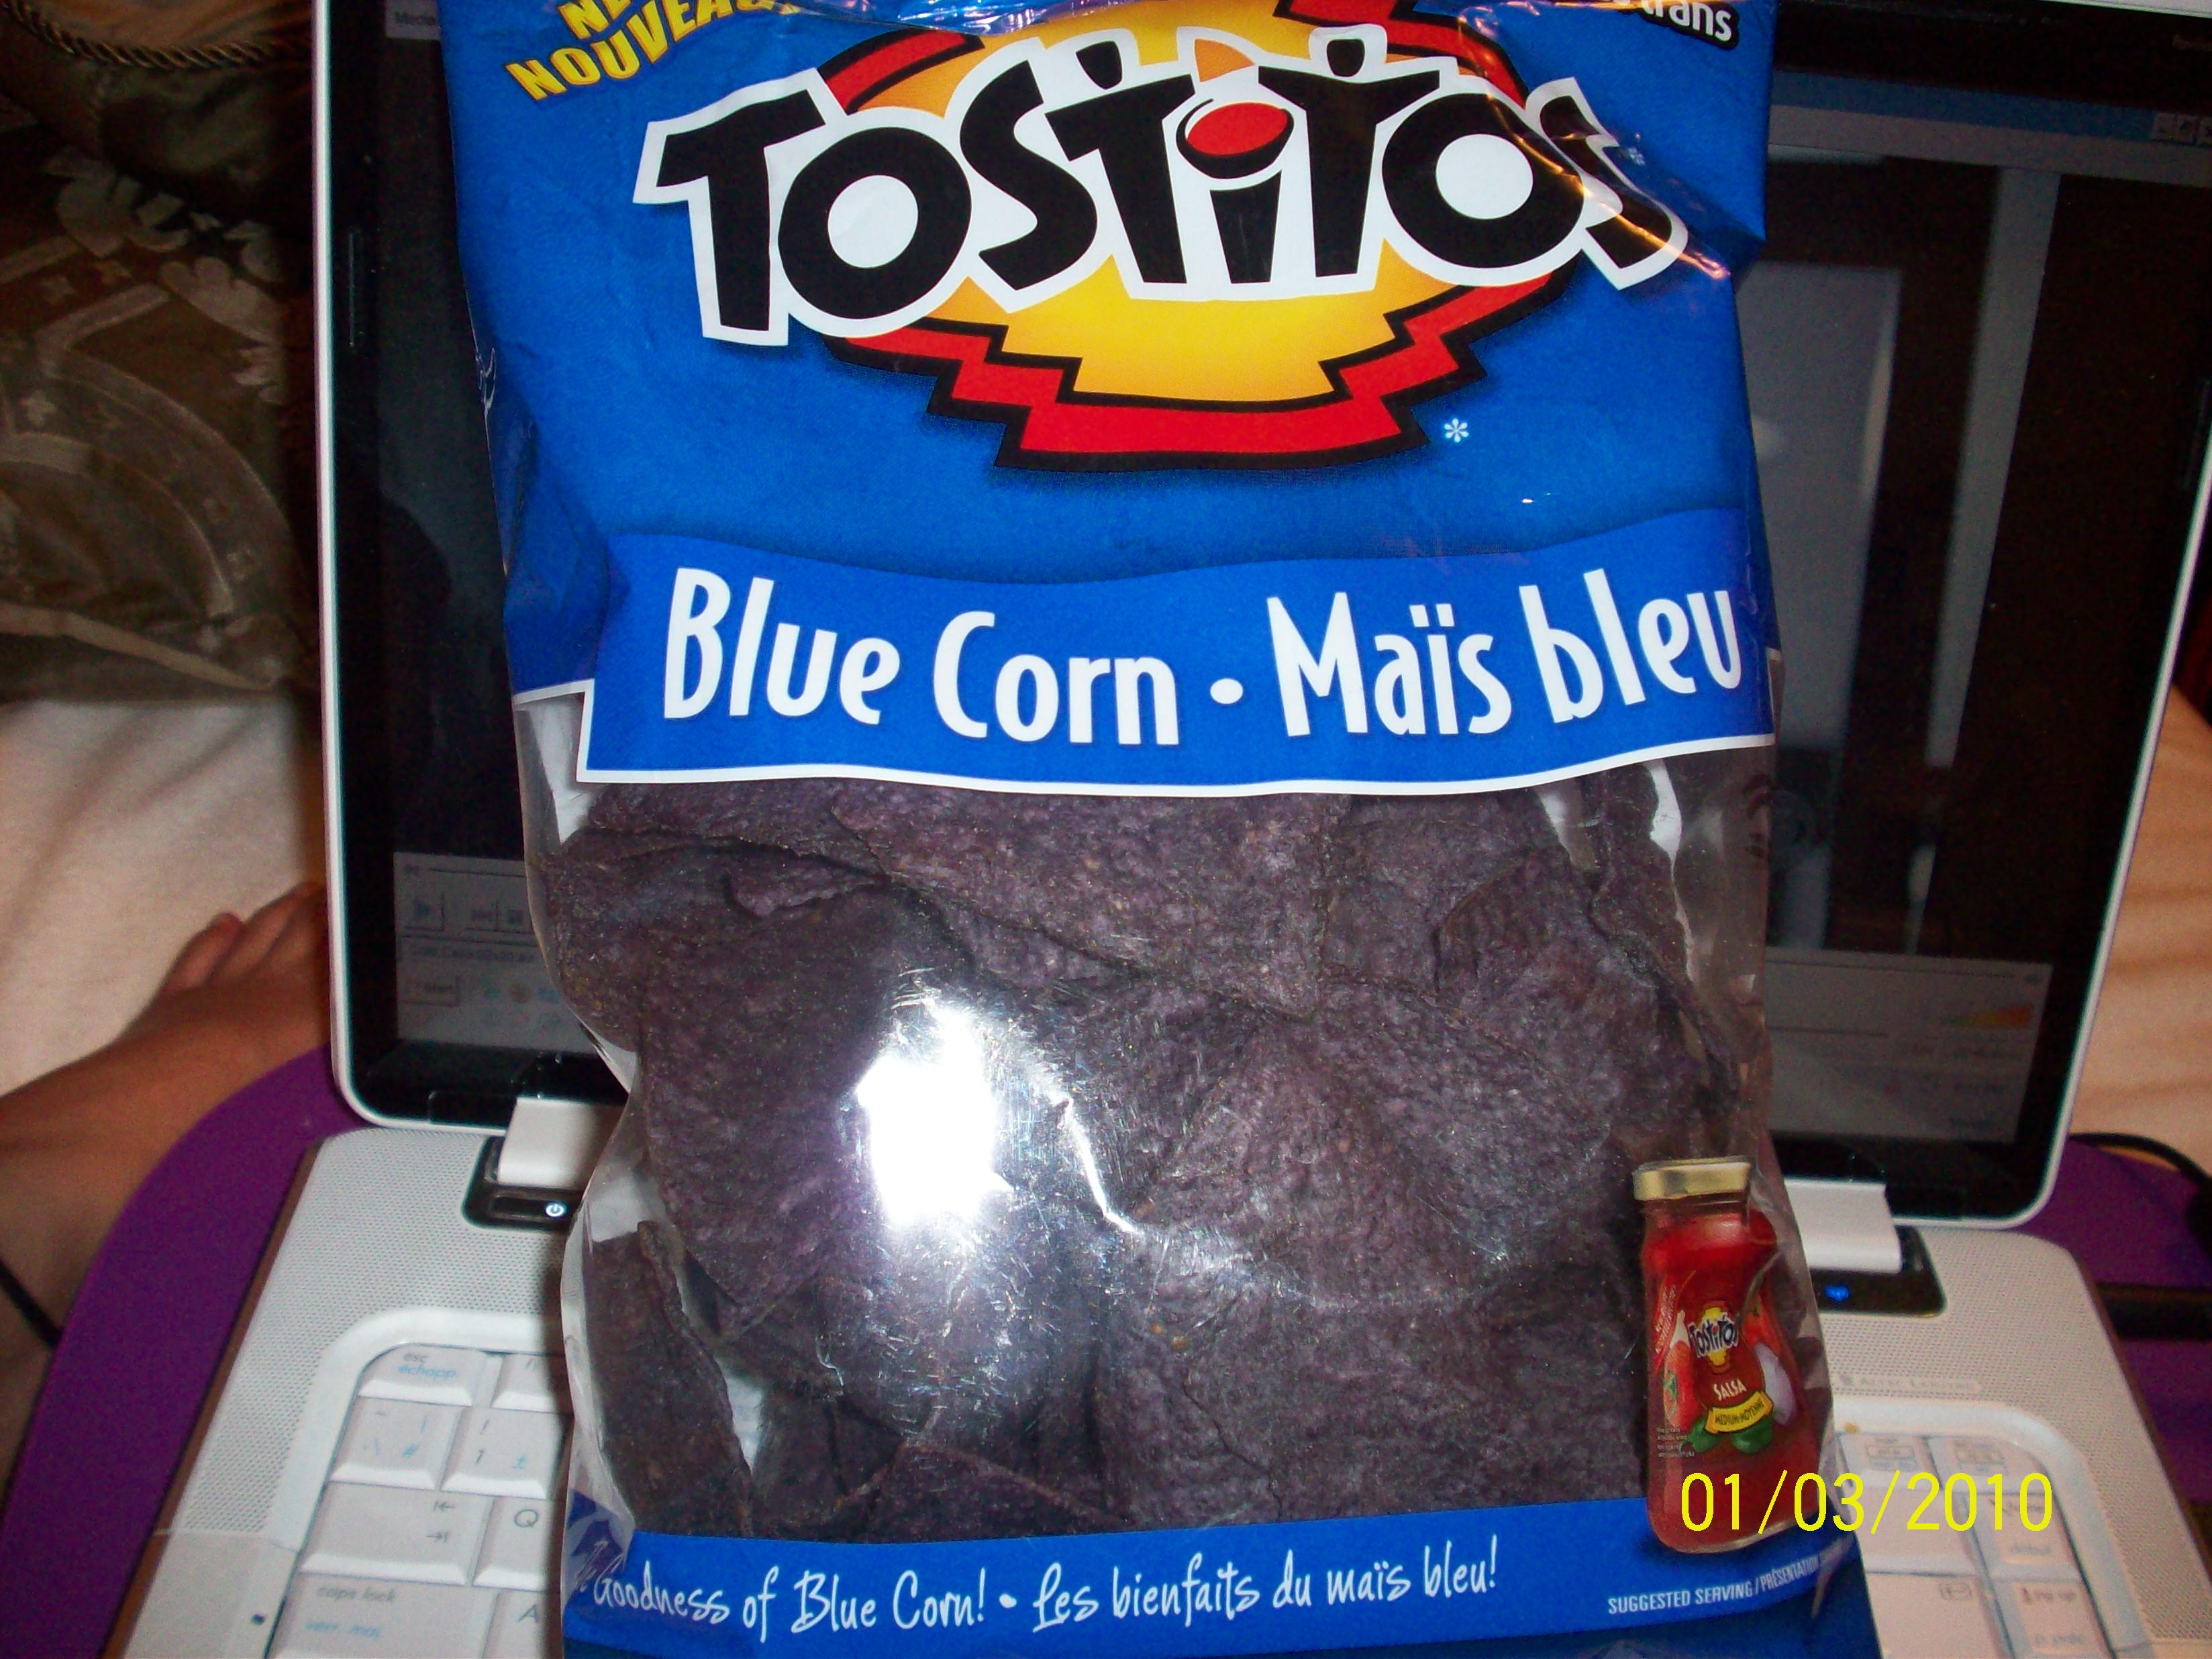 http://foodloader.net/cutie_2010-03-01_Tostitos_Blue_Corn.jpg